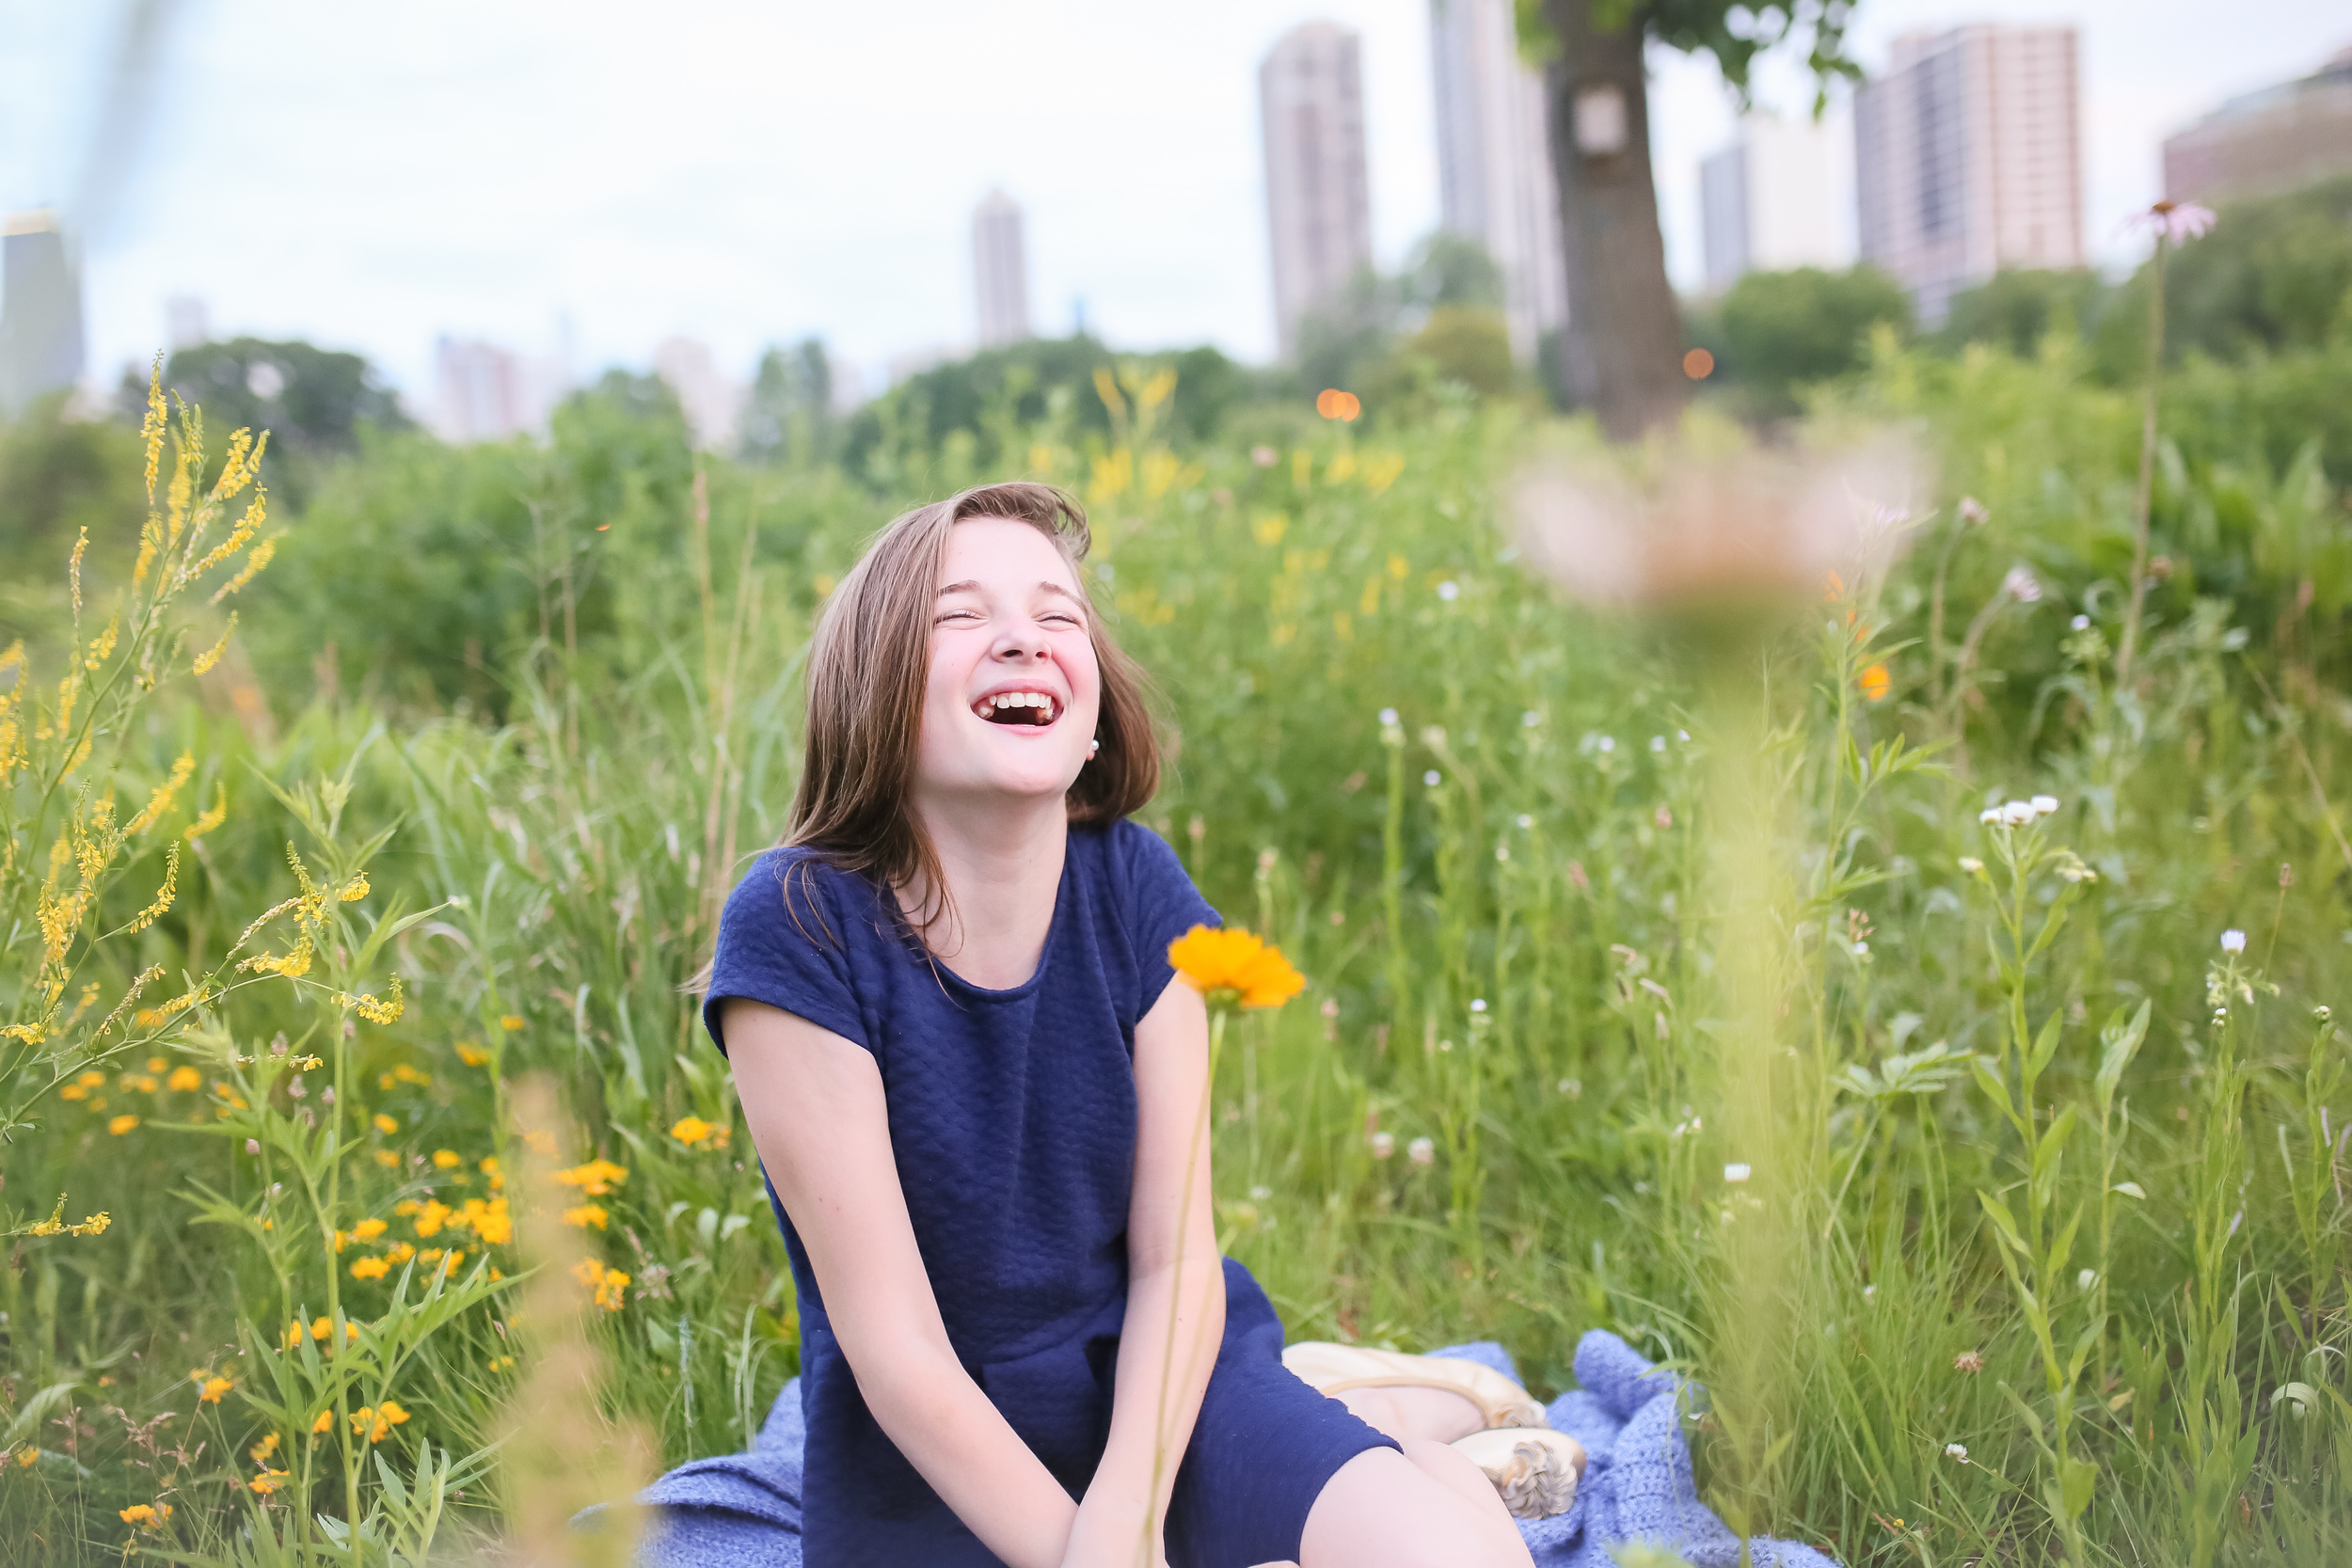 little girl laughing in field of flowers